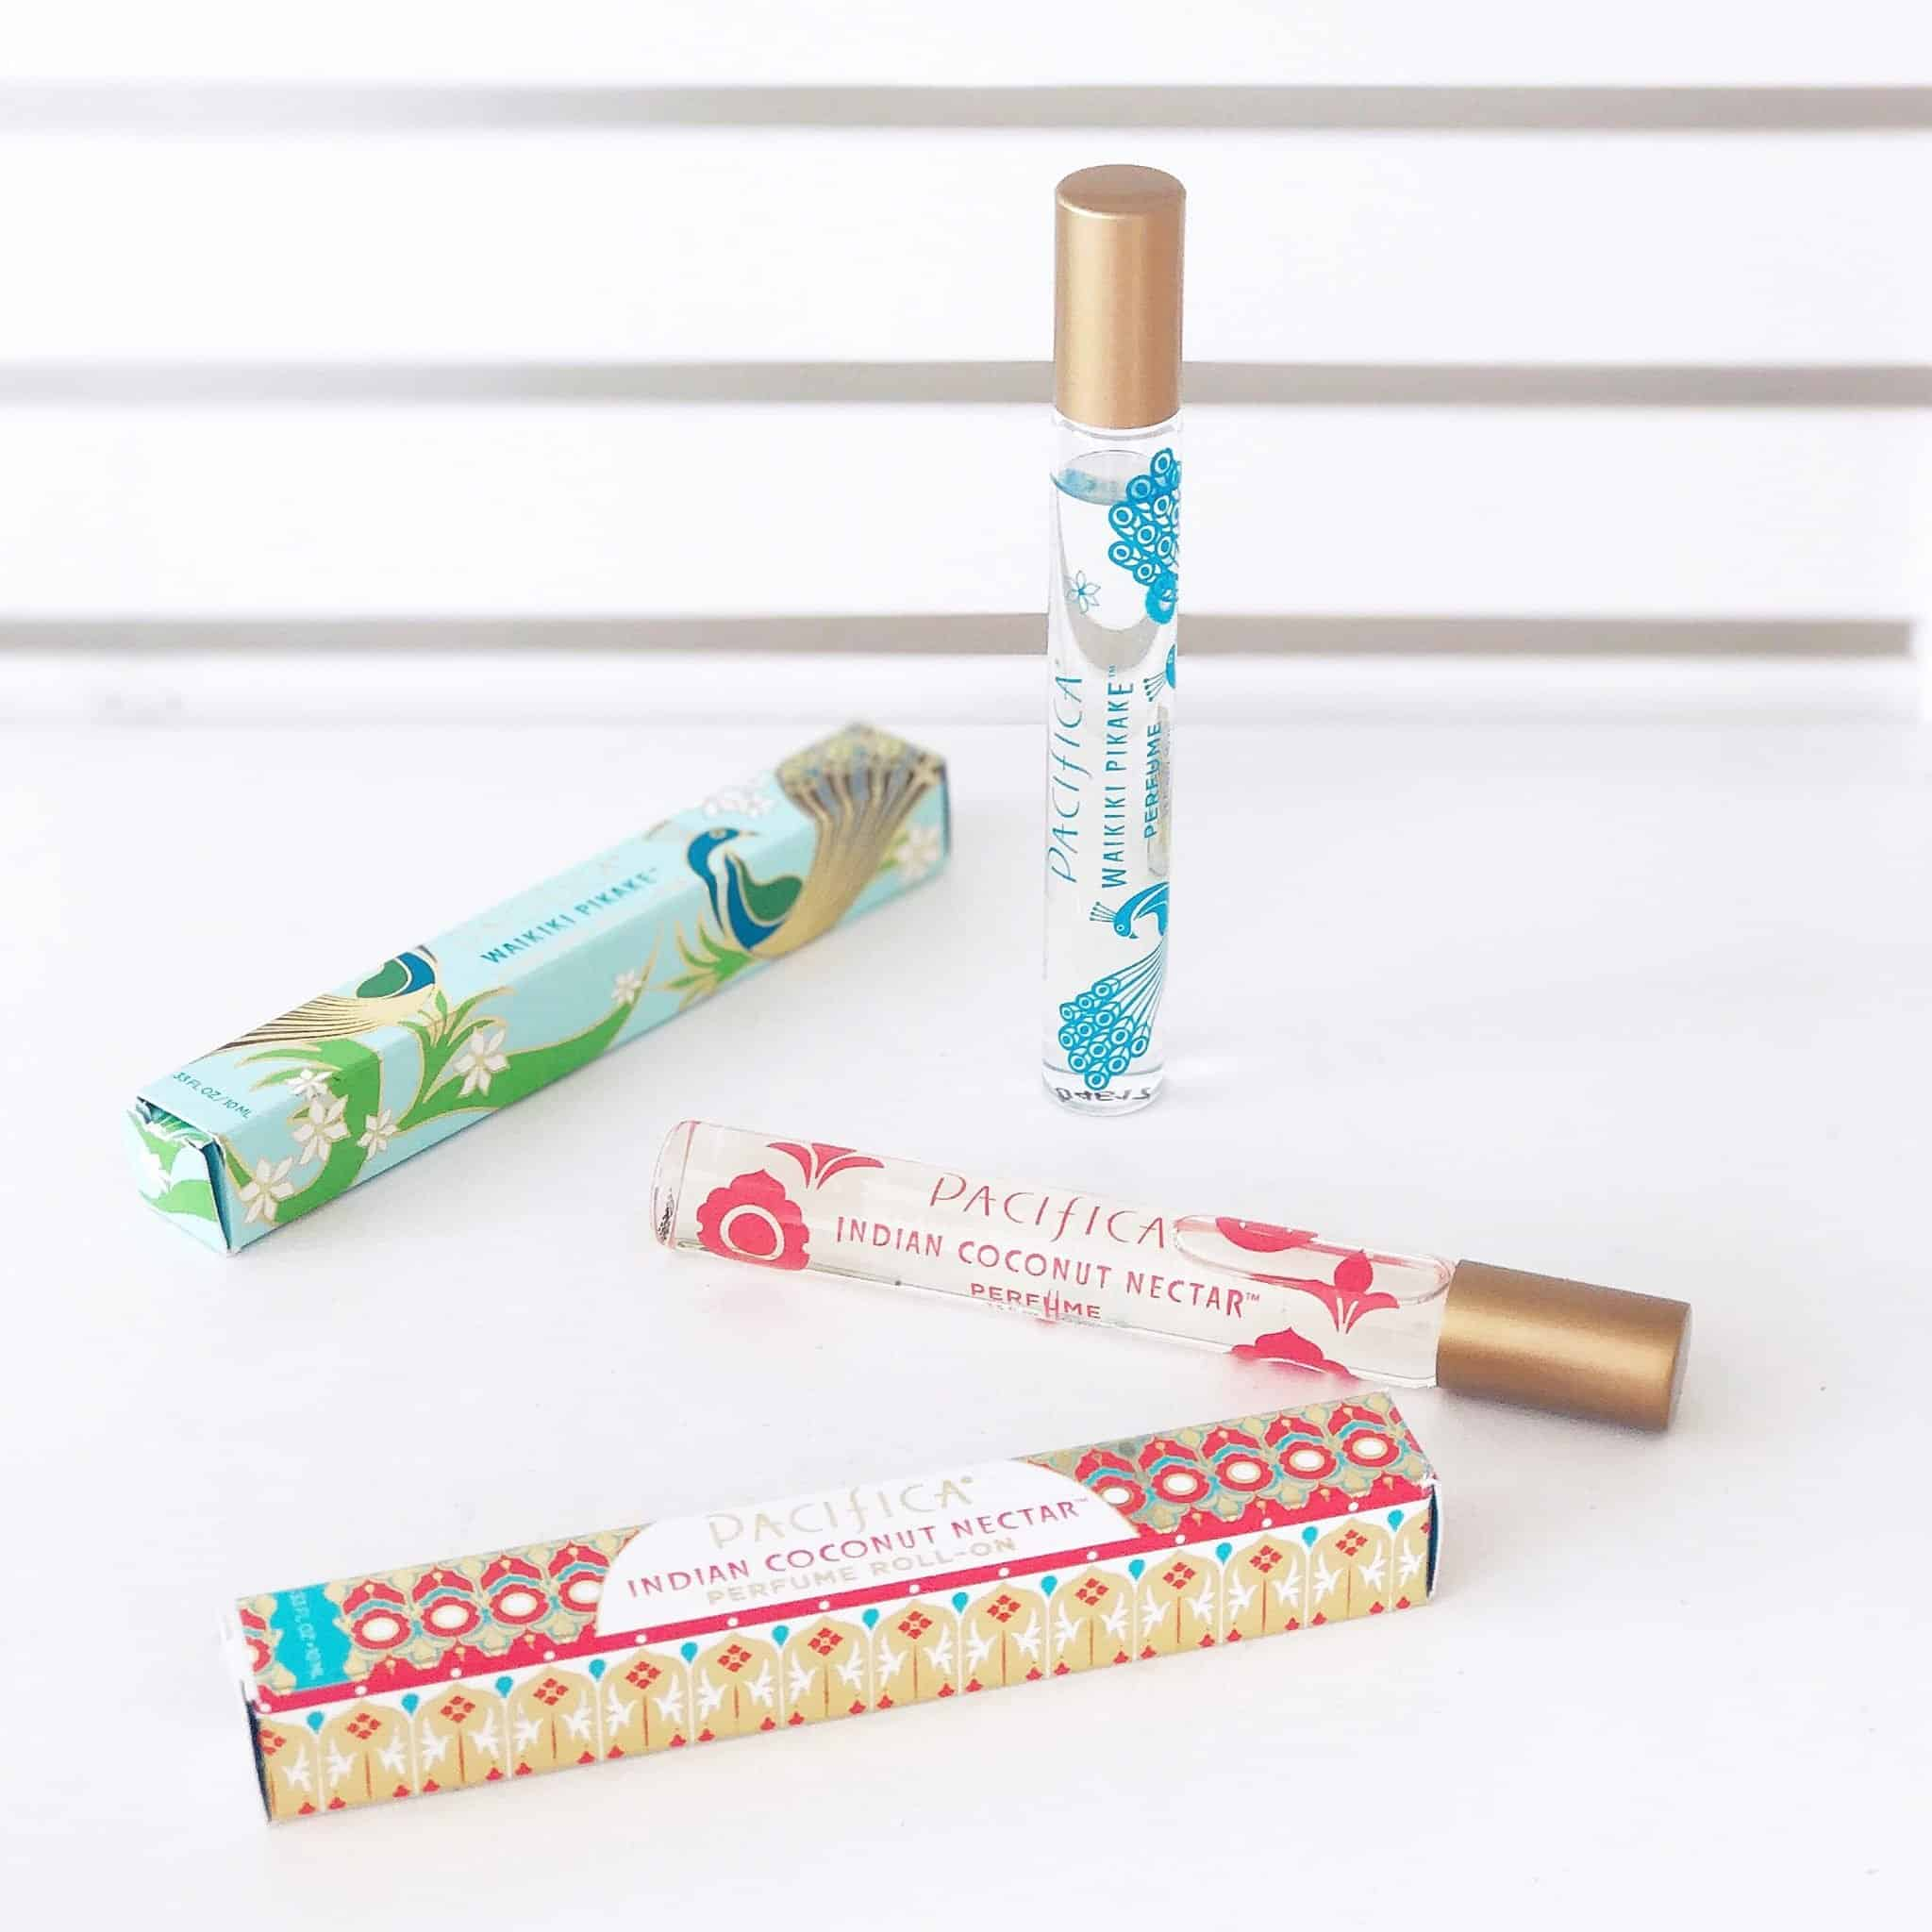 Perfectly Portable Natural Perfumes from Pacifica, Ideal For Travel